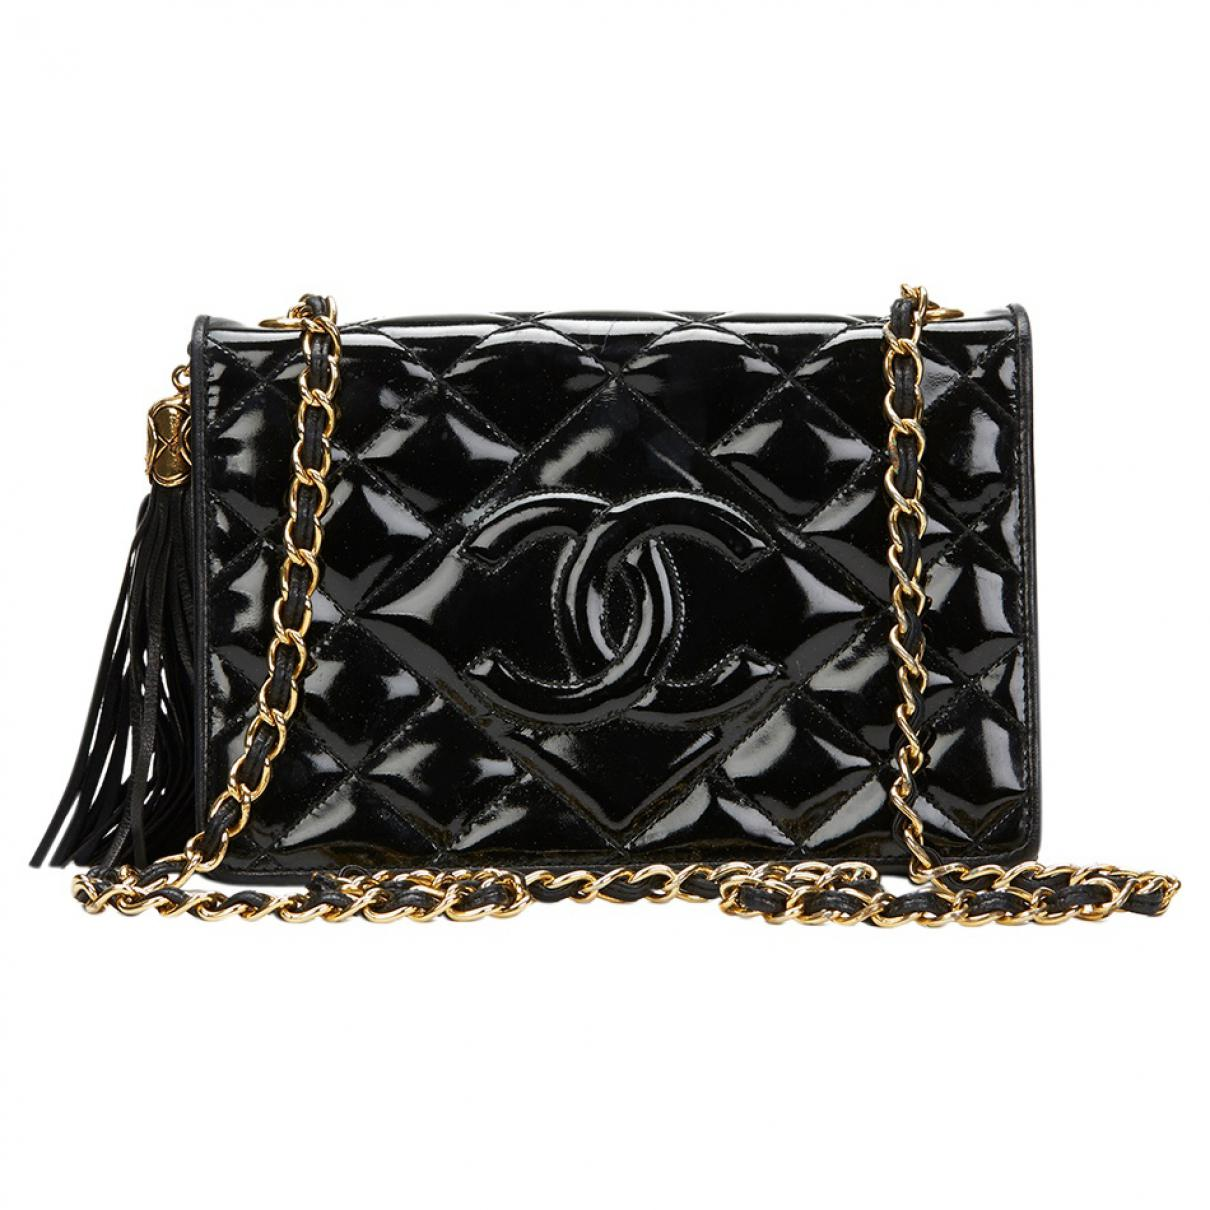 0309cc2f1112 Chanel Patent Leather Handbag in Black - Lyst